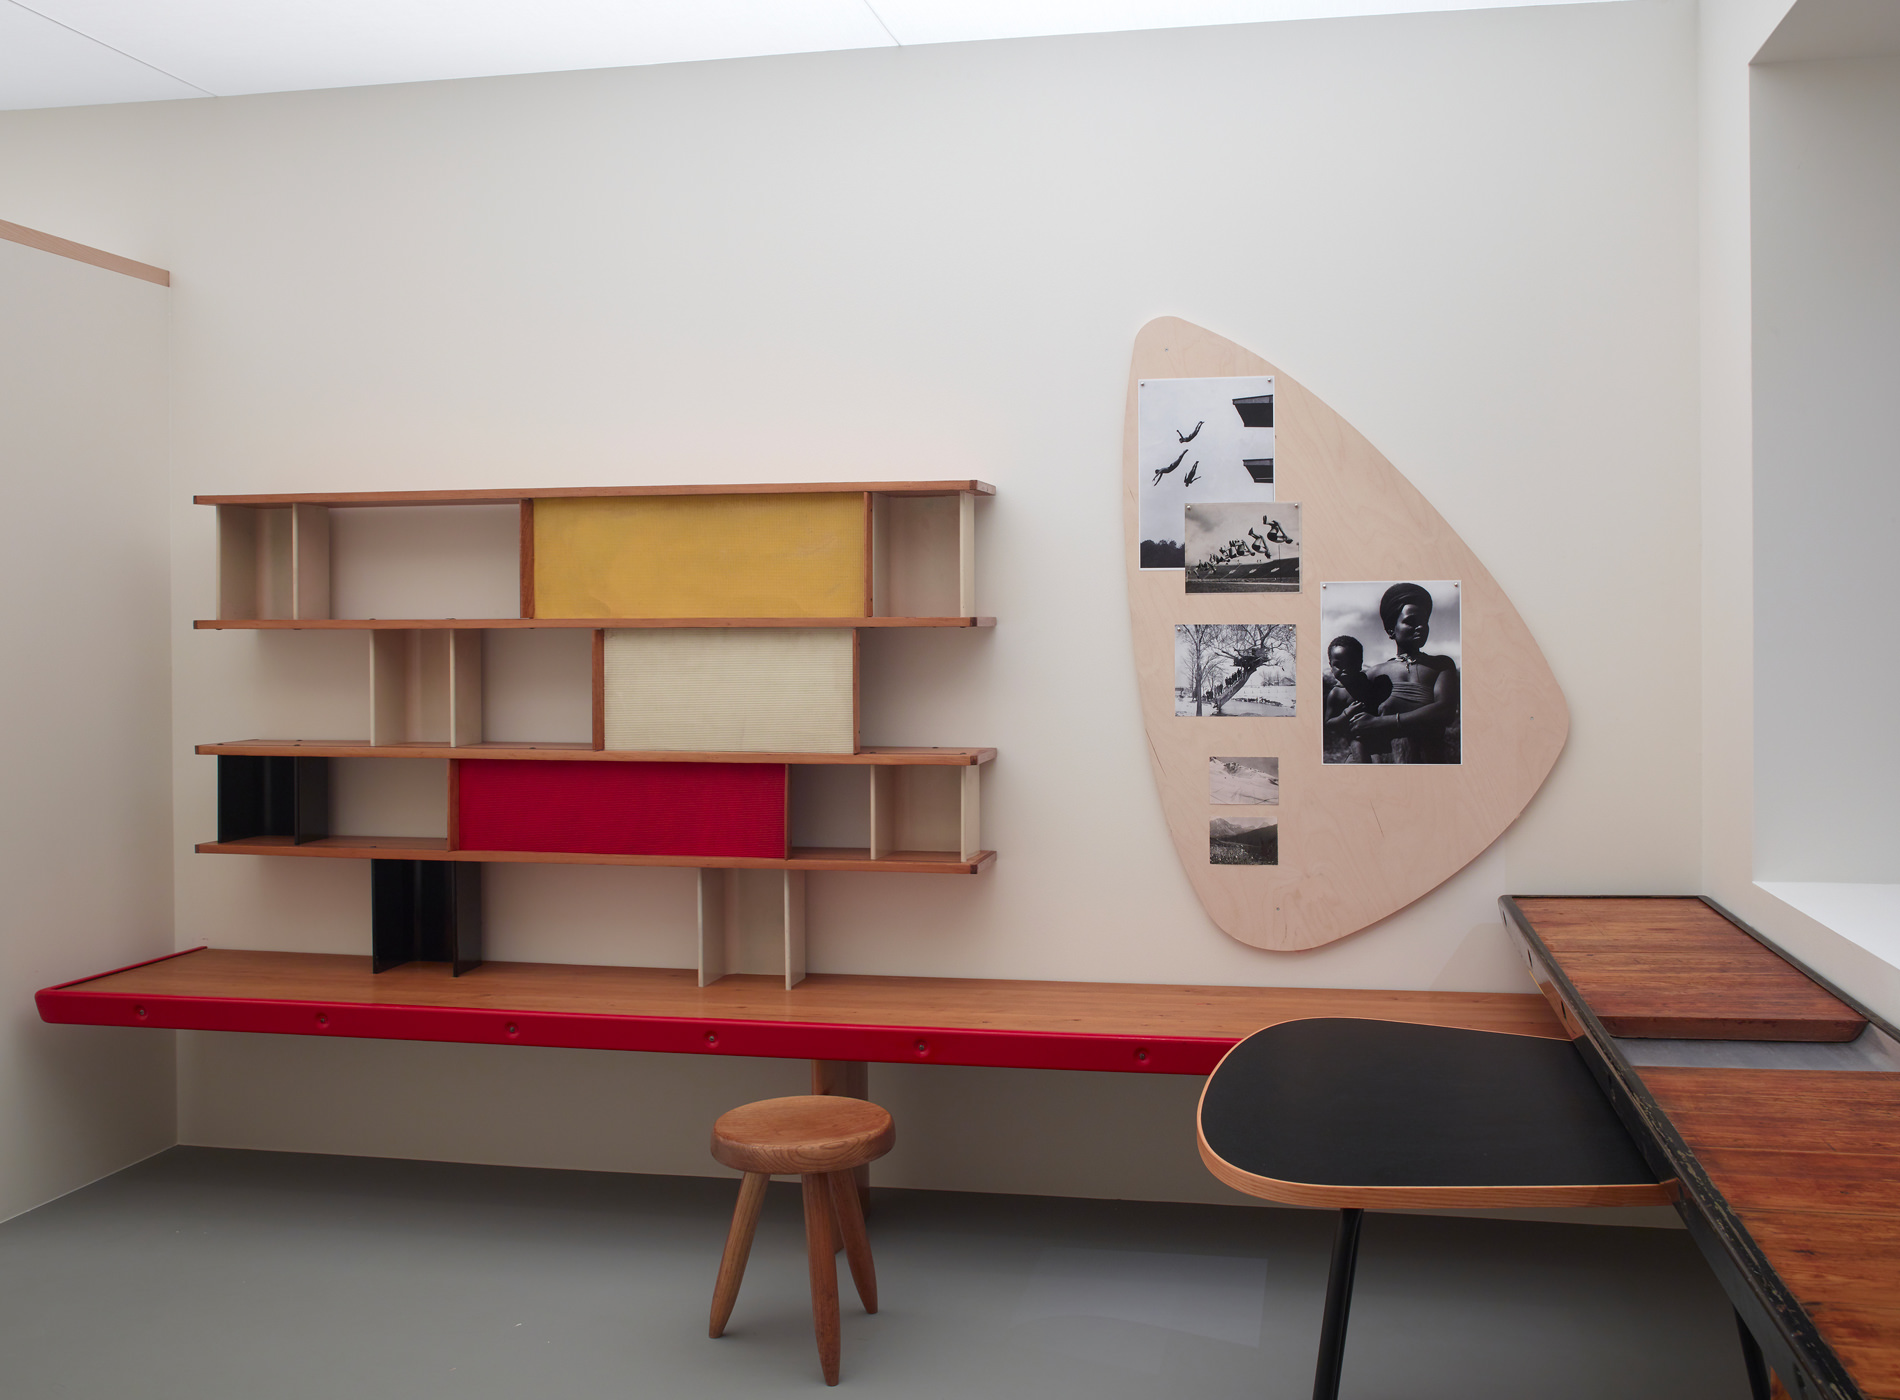 Fondation Louis Vuitton — Charlotte Perriand Maison de la Tunisie. Chambre d'Etudiant, Cité Universitaire Internationale de Paris 1952